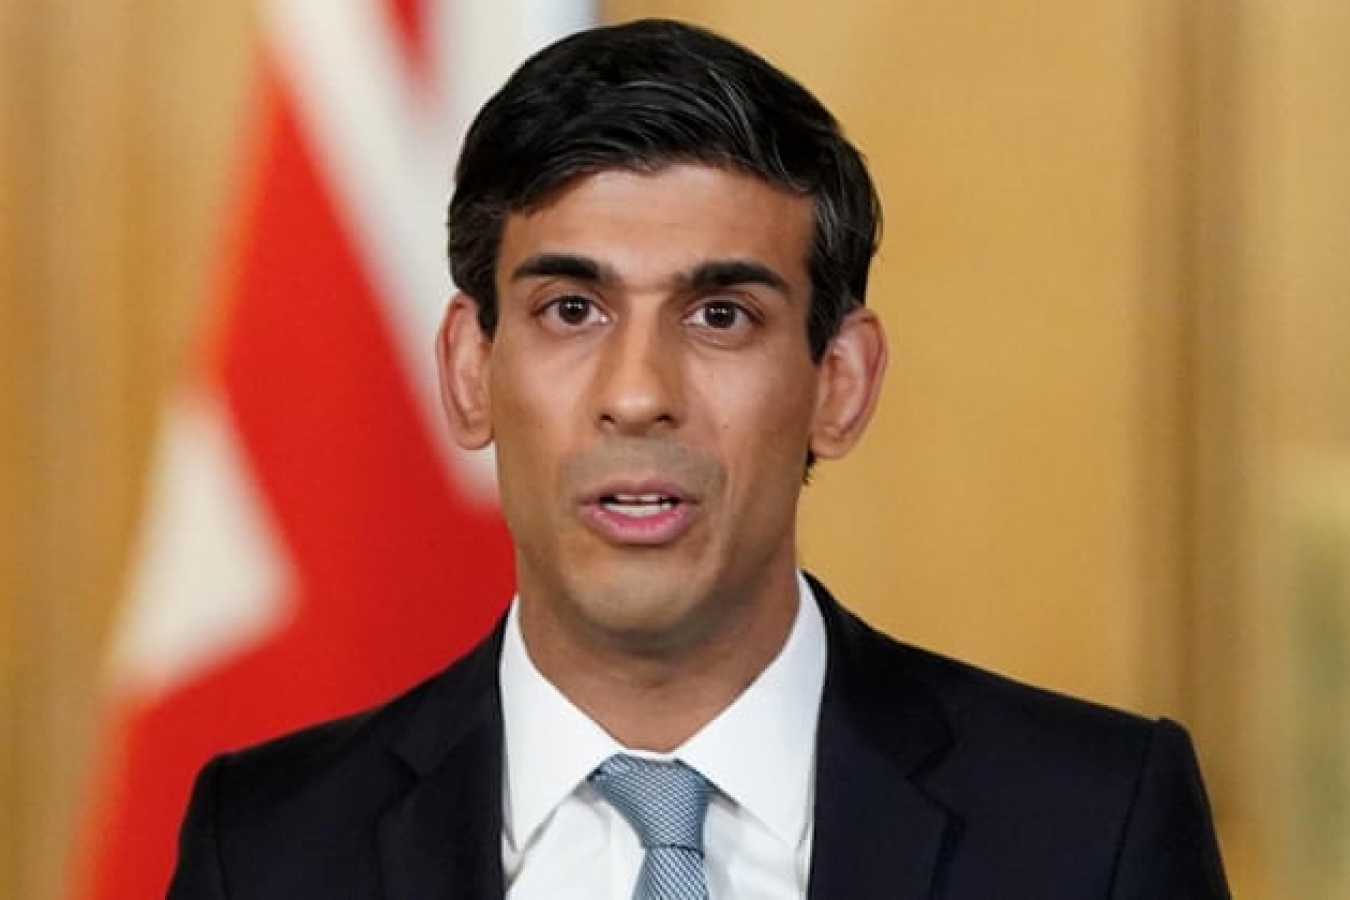 Rishi Sunak Chancellor of the Exchequer